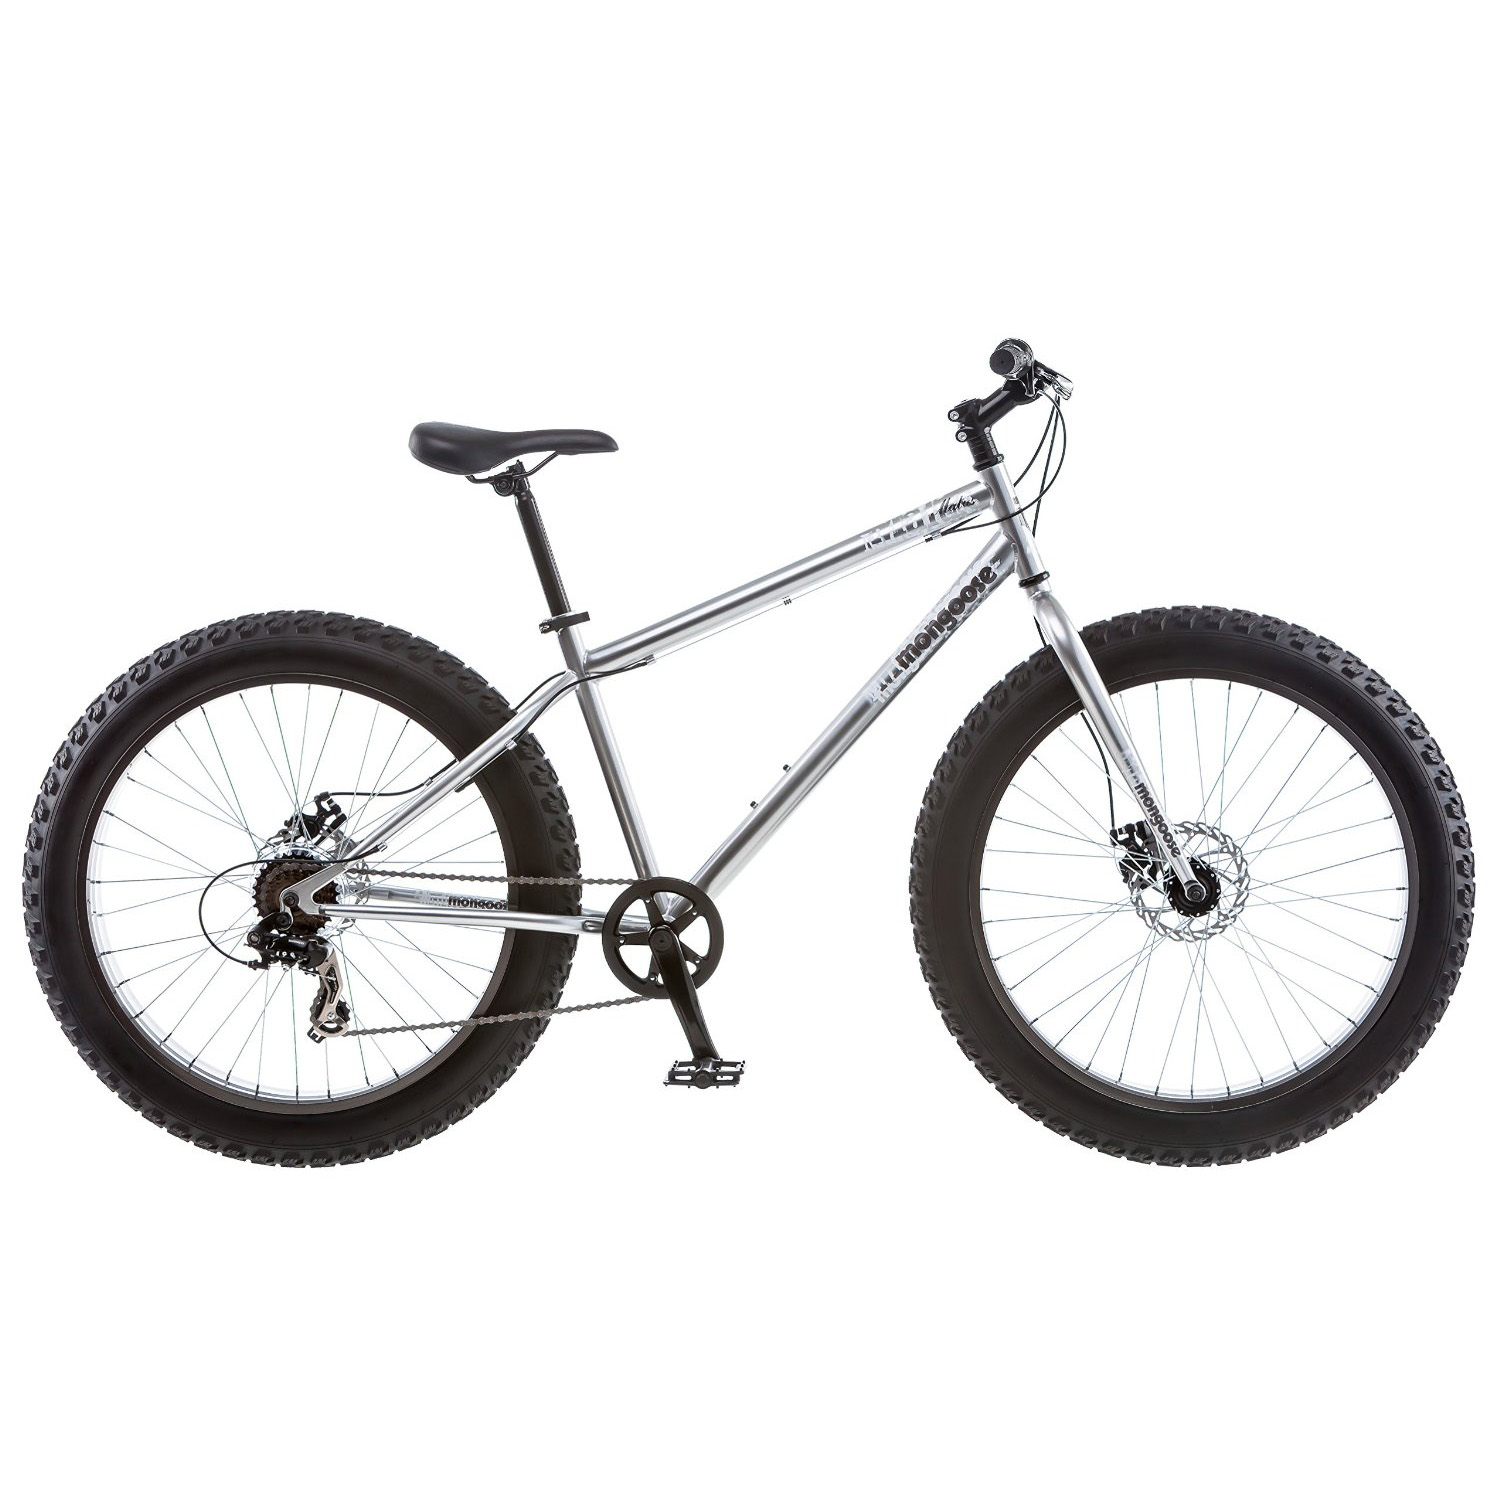 Malus Fat Bike, Mens